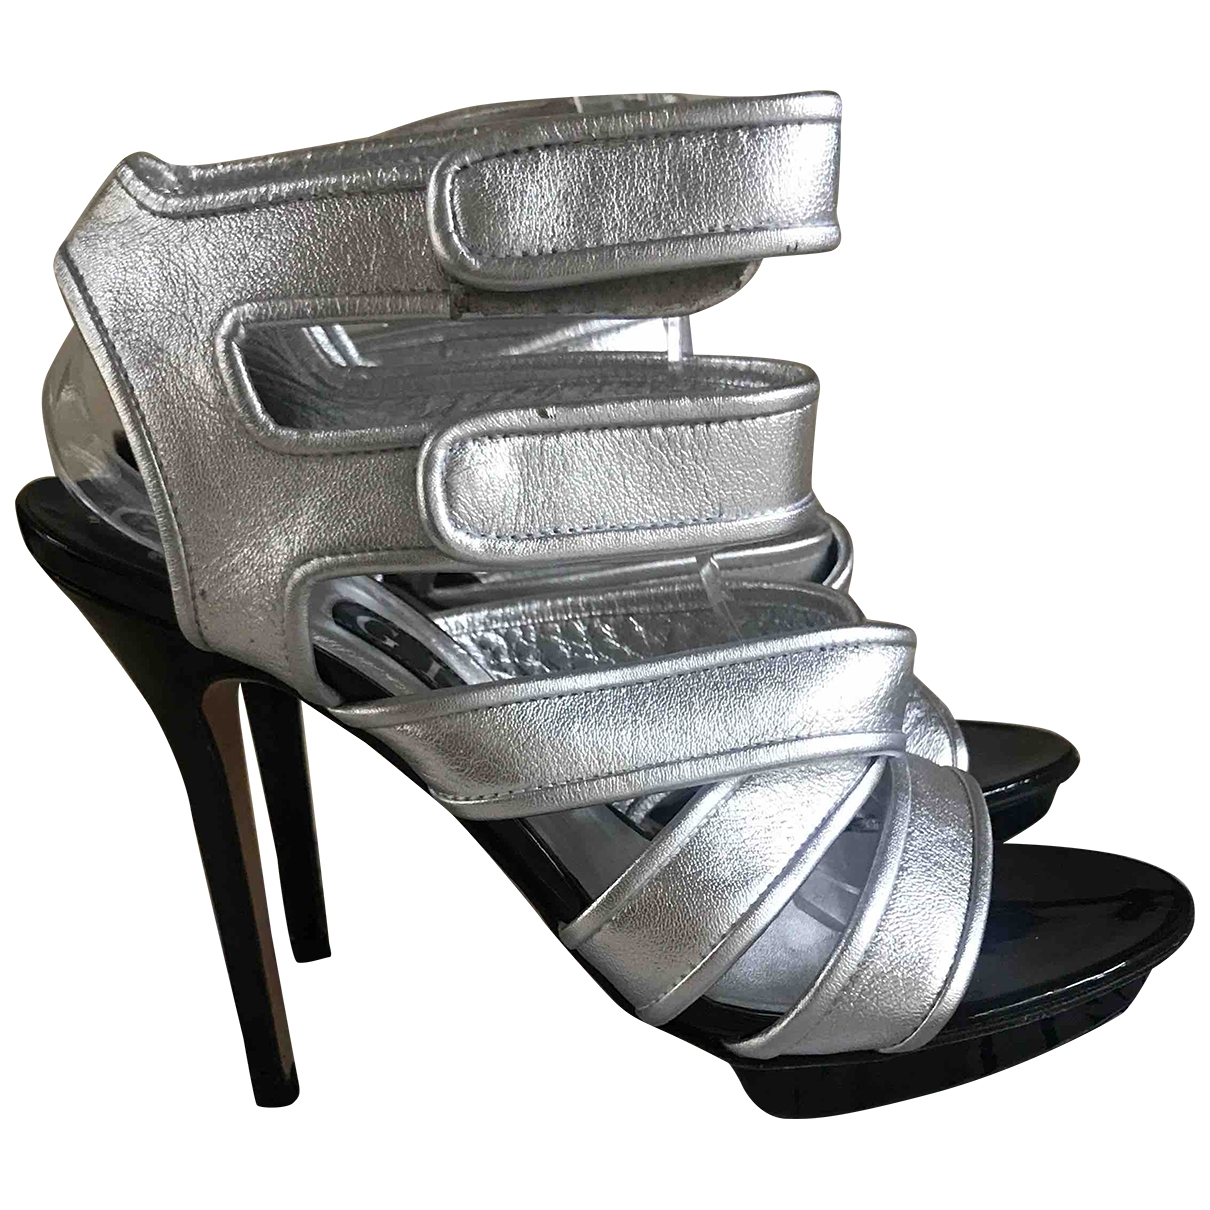 Gina \N Silver Leather Sandals for Women 6 UK